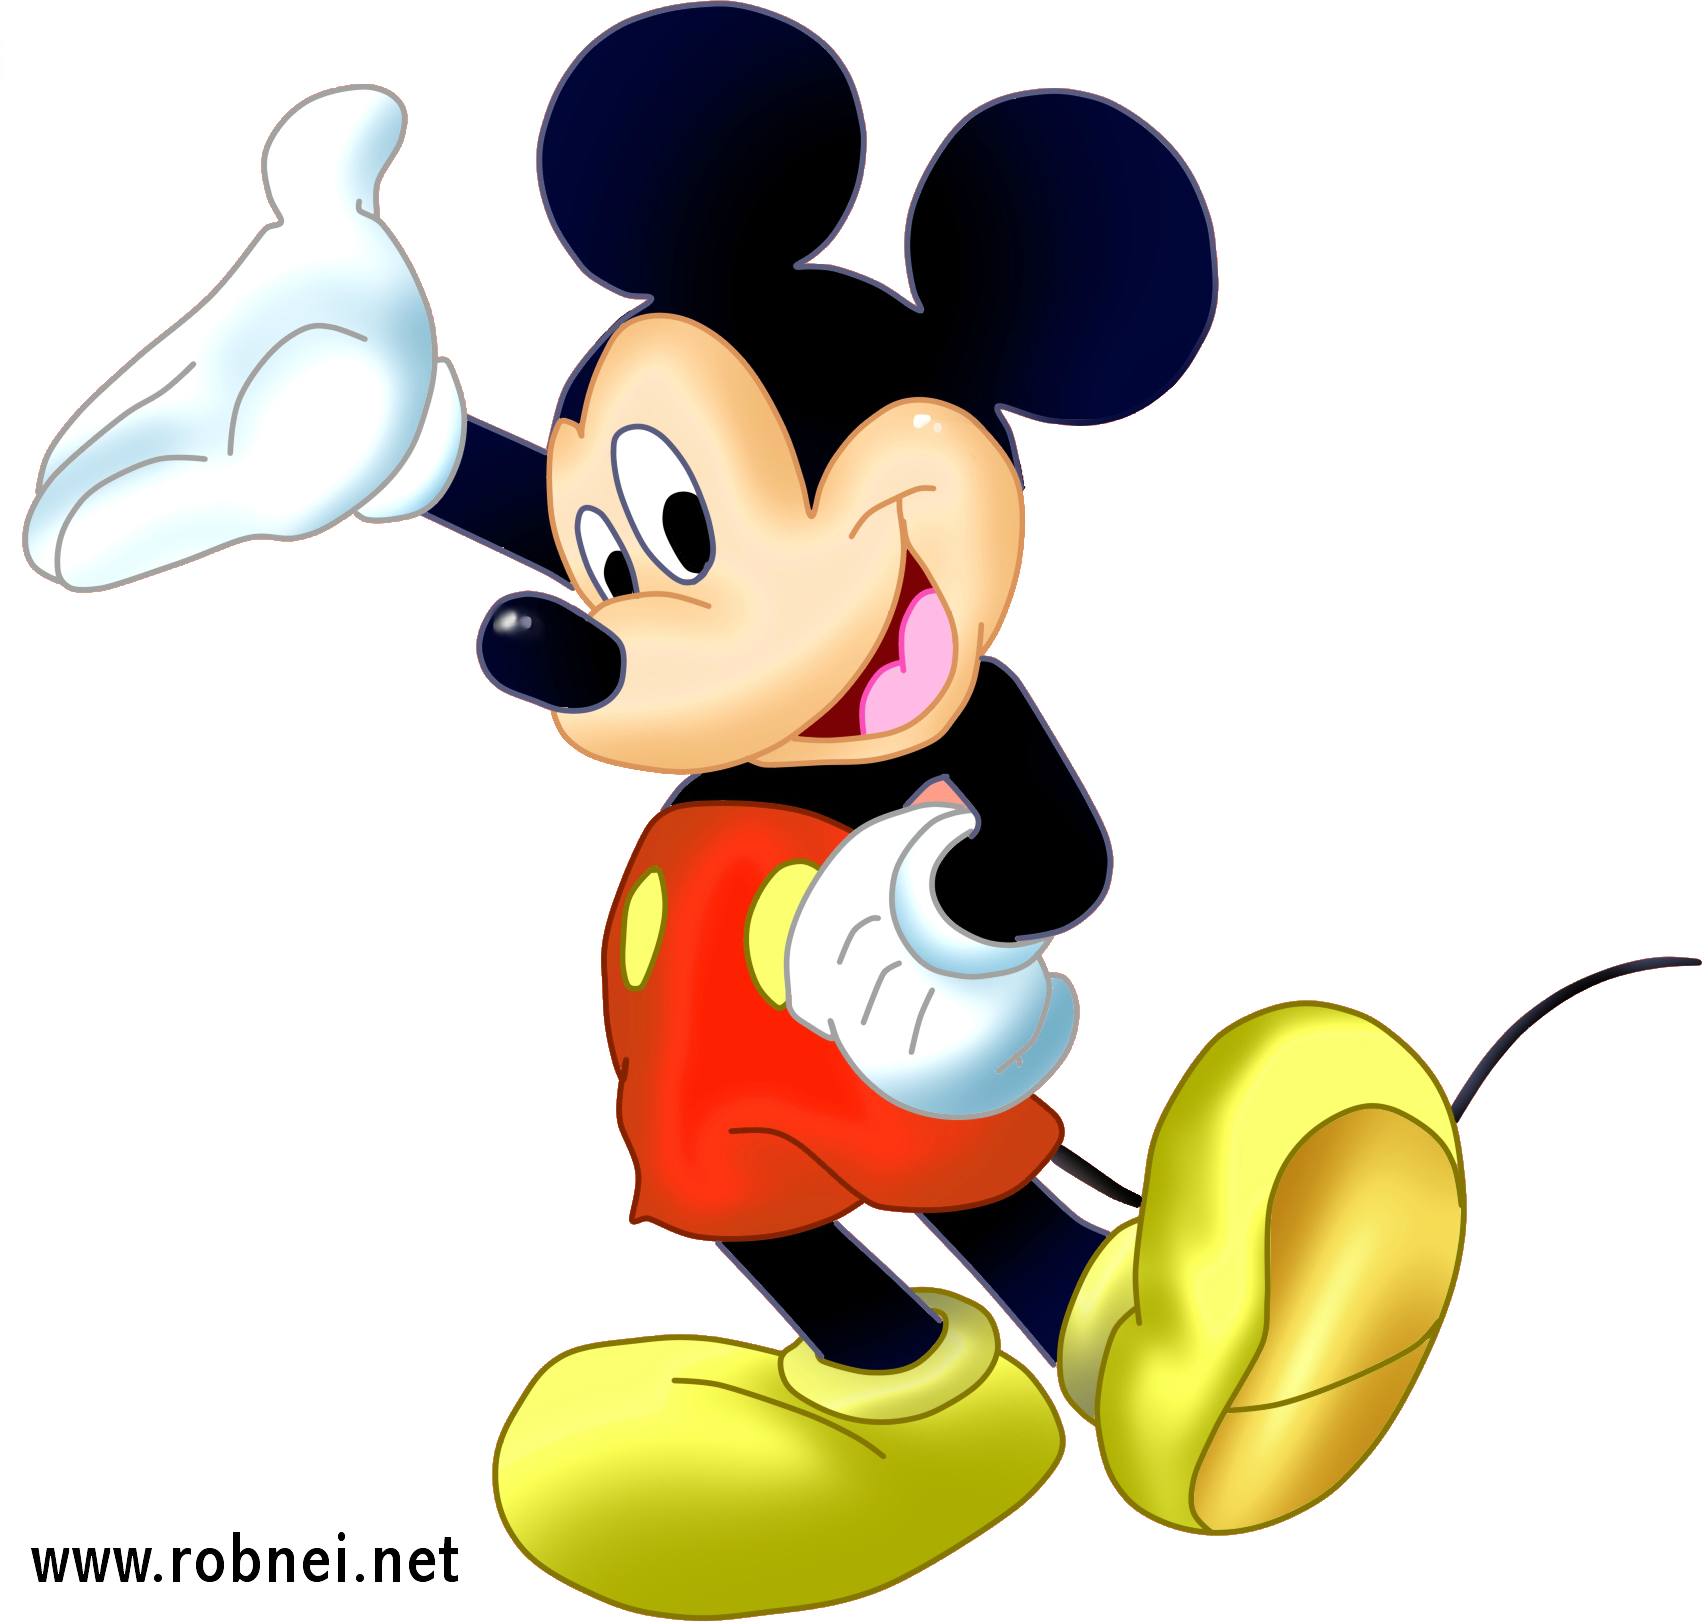 Thanksgiving mickey mouse clipart black and whitwe freeuse mickey mouse | Mickey Mouse Formato PNG Transparente | Party Themes ... freeuse